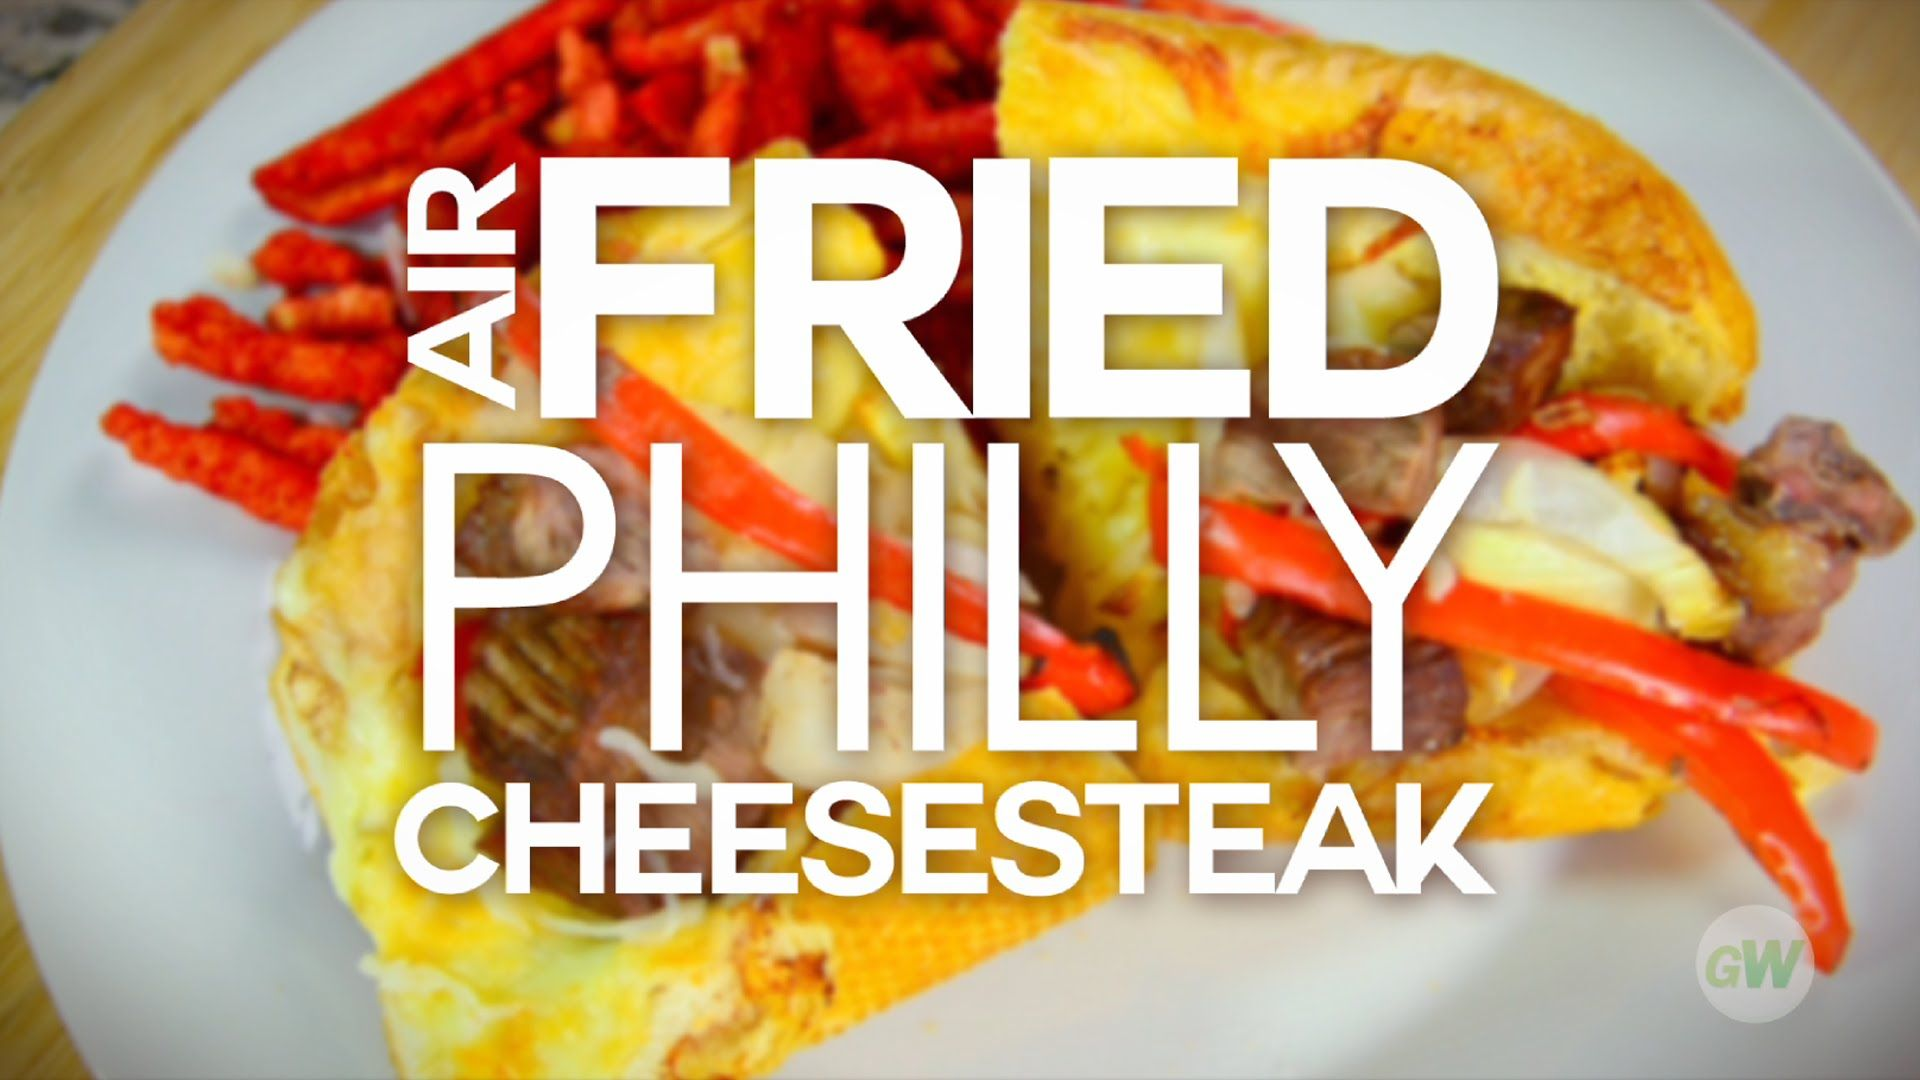 Air Fried Philly Cheese steak recipe. Use this Air Fryer